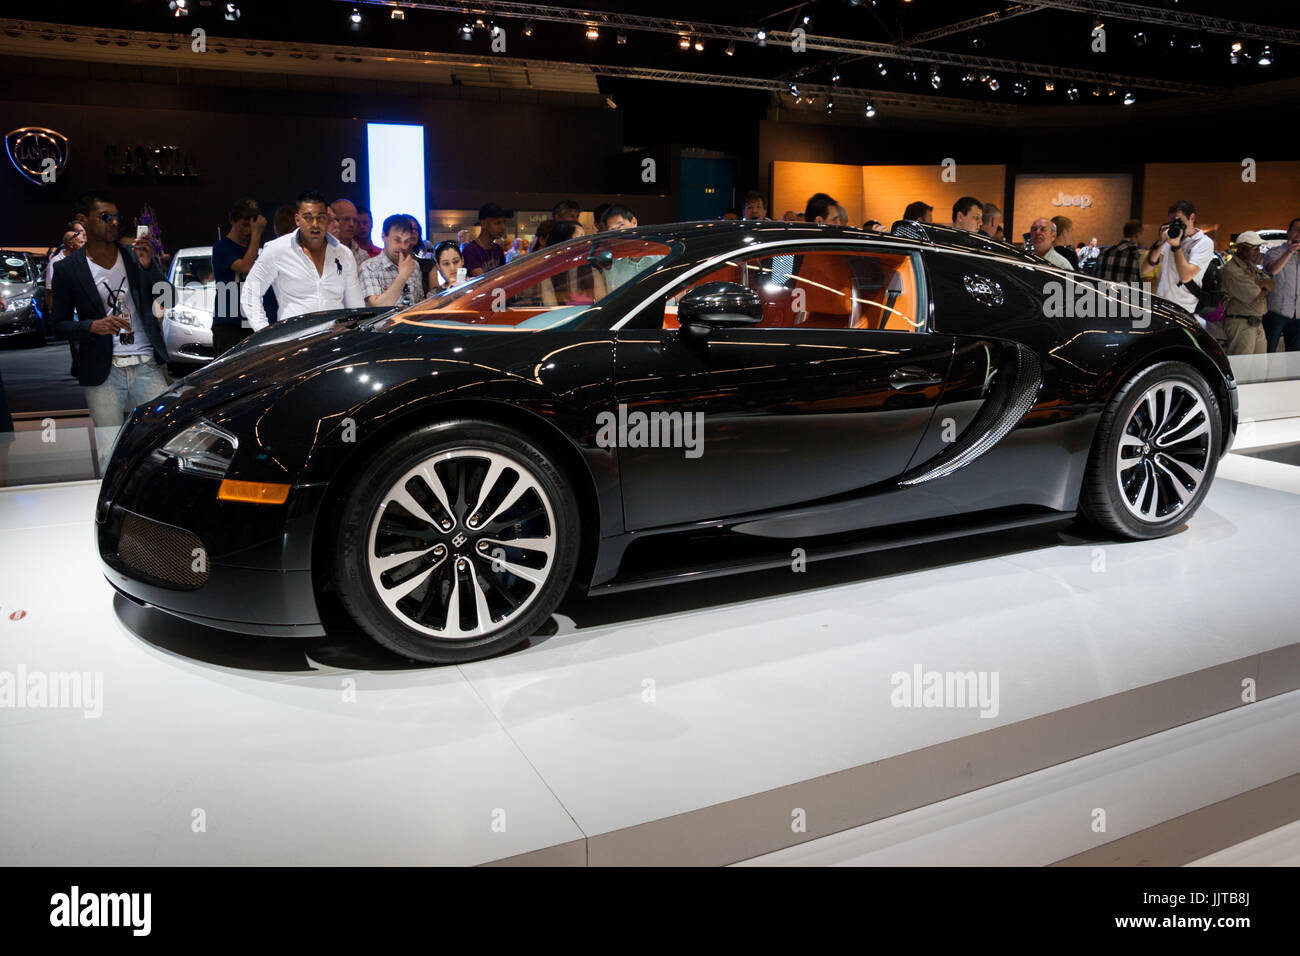 Bugatti 16 4 Veyron Stock Photos & Bugatti 16 4 Veyron Stock Images